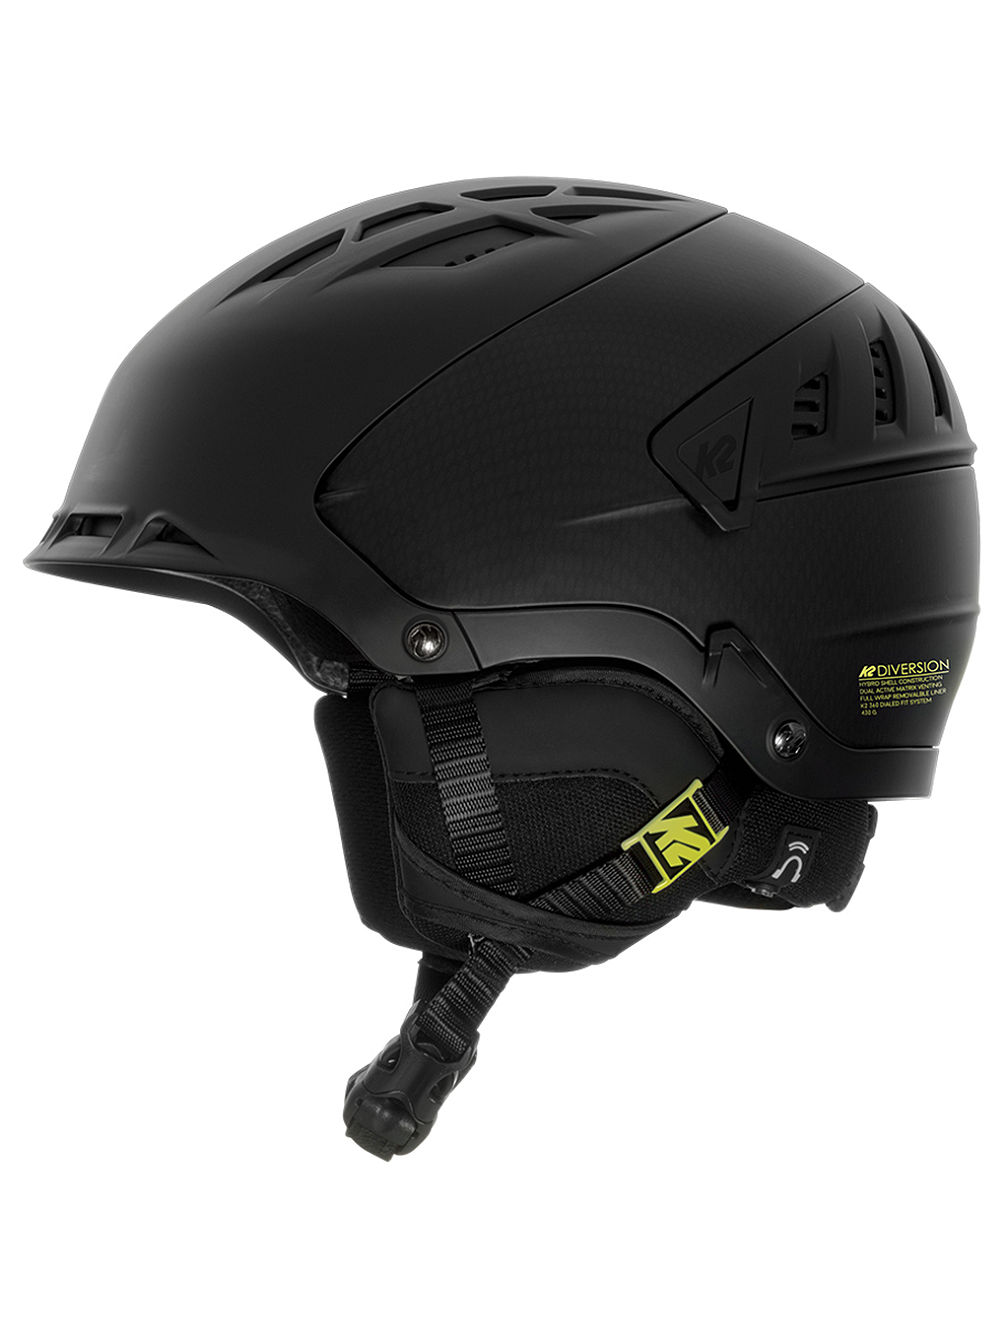 Diversion Helmet